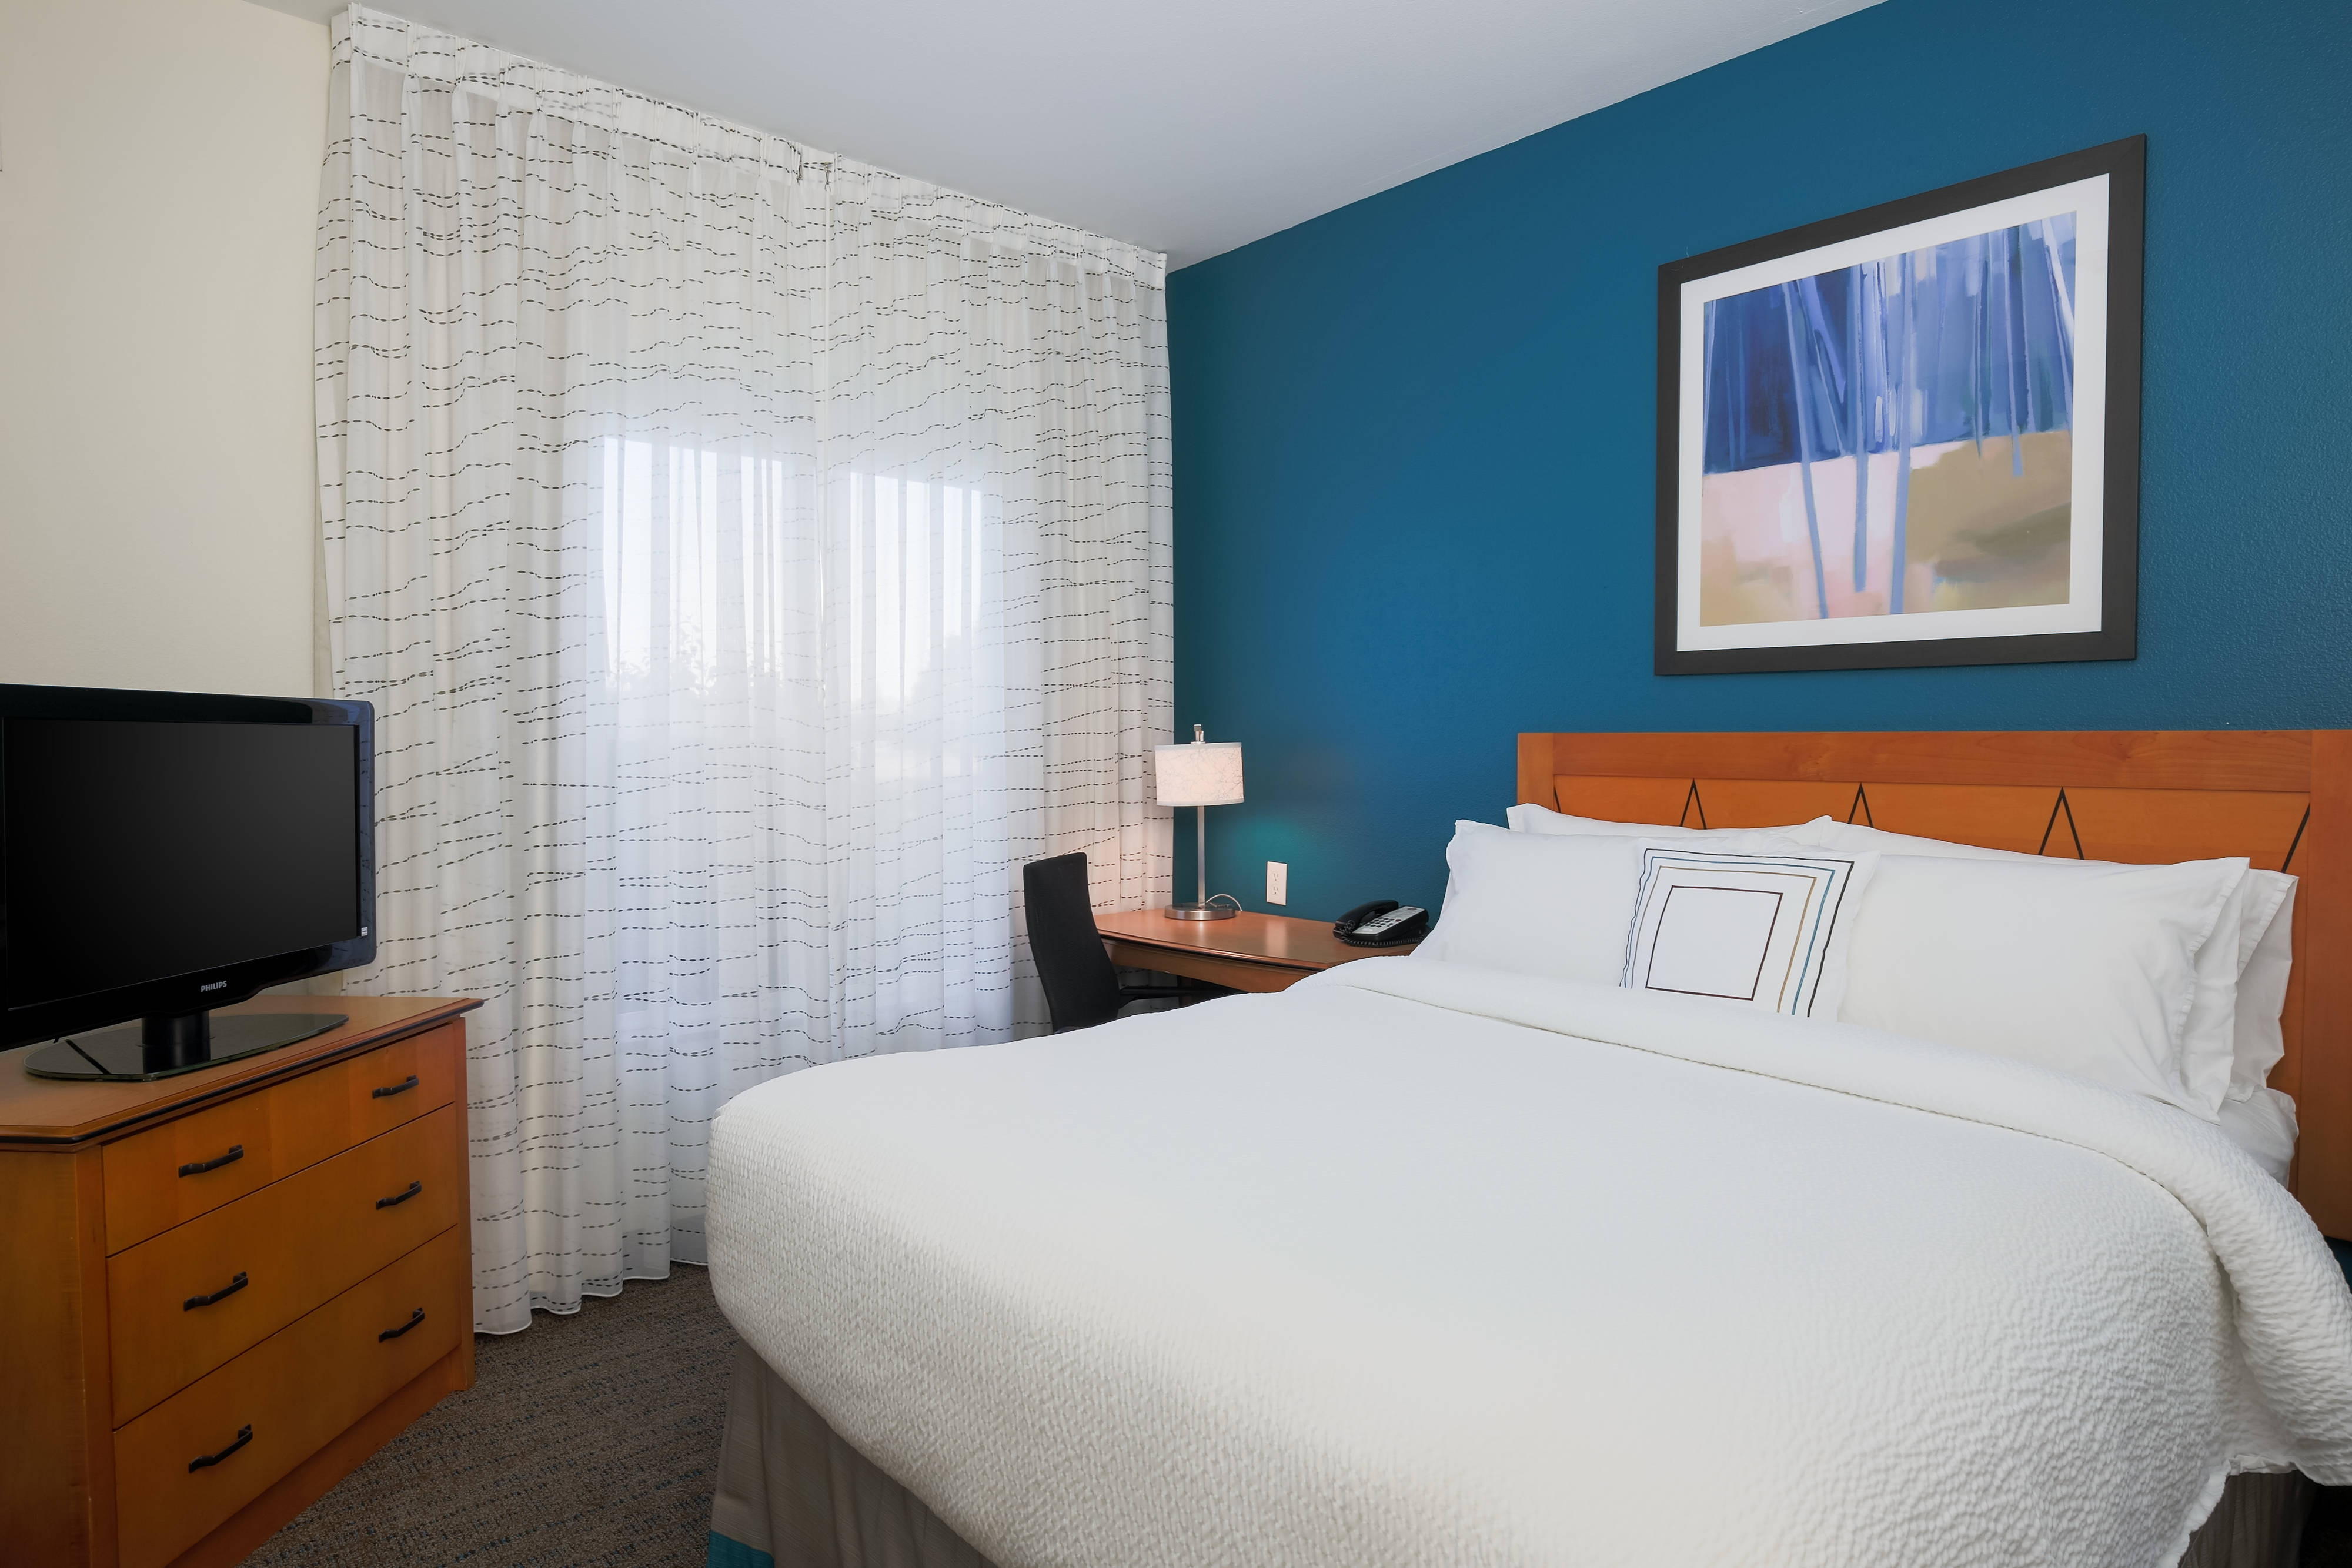 Residence Inn Chico | Extended-Stay Hotel in Chico on ideal breakfast, ideal family, ideal electrical, ideal toys, ideal air conditioner, ideal beach, ideal horse, ideal restaurant, ideal office, ideal room, ideal electric meter, ideal house, ideal tile, ideal beauty, ideal furniture, ideal bride, ideal bedroom, ideal roofing,